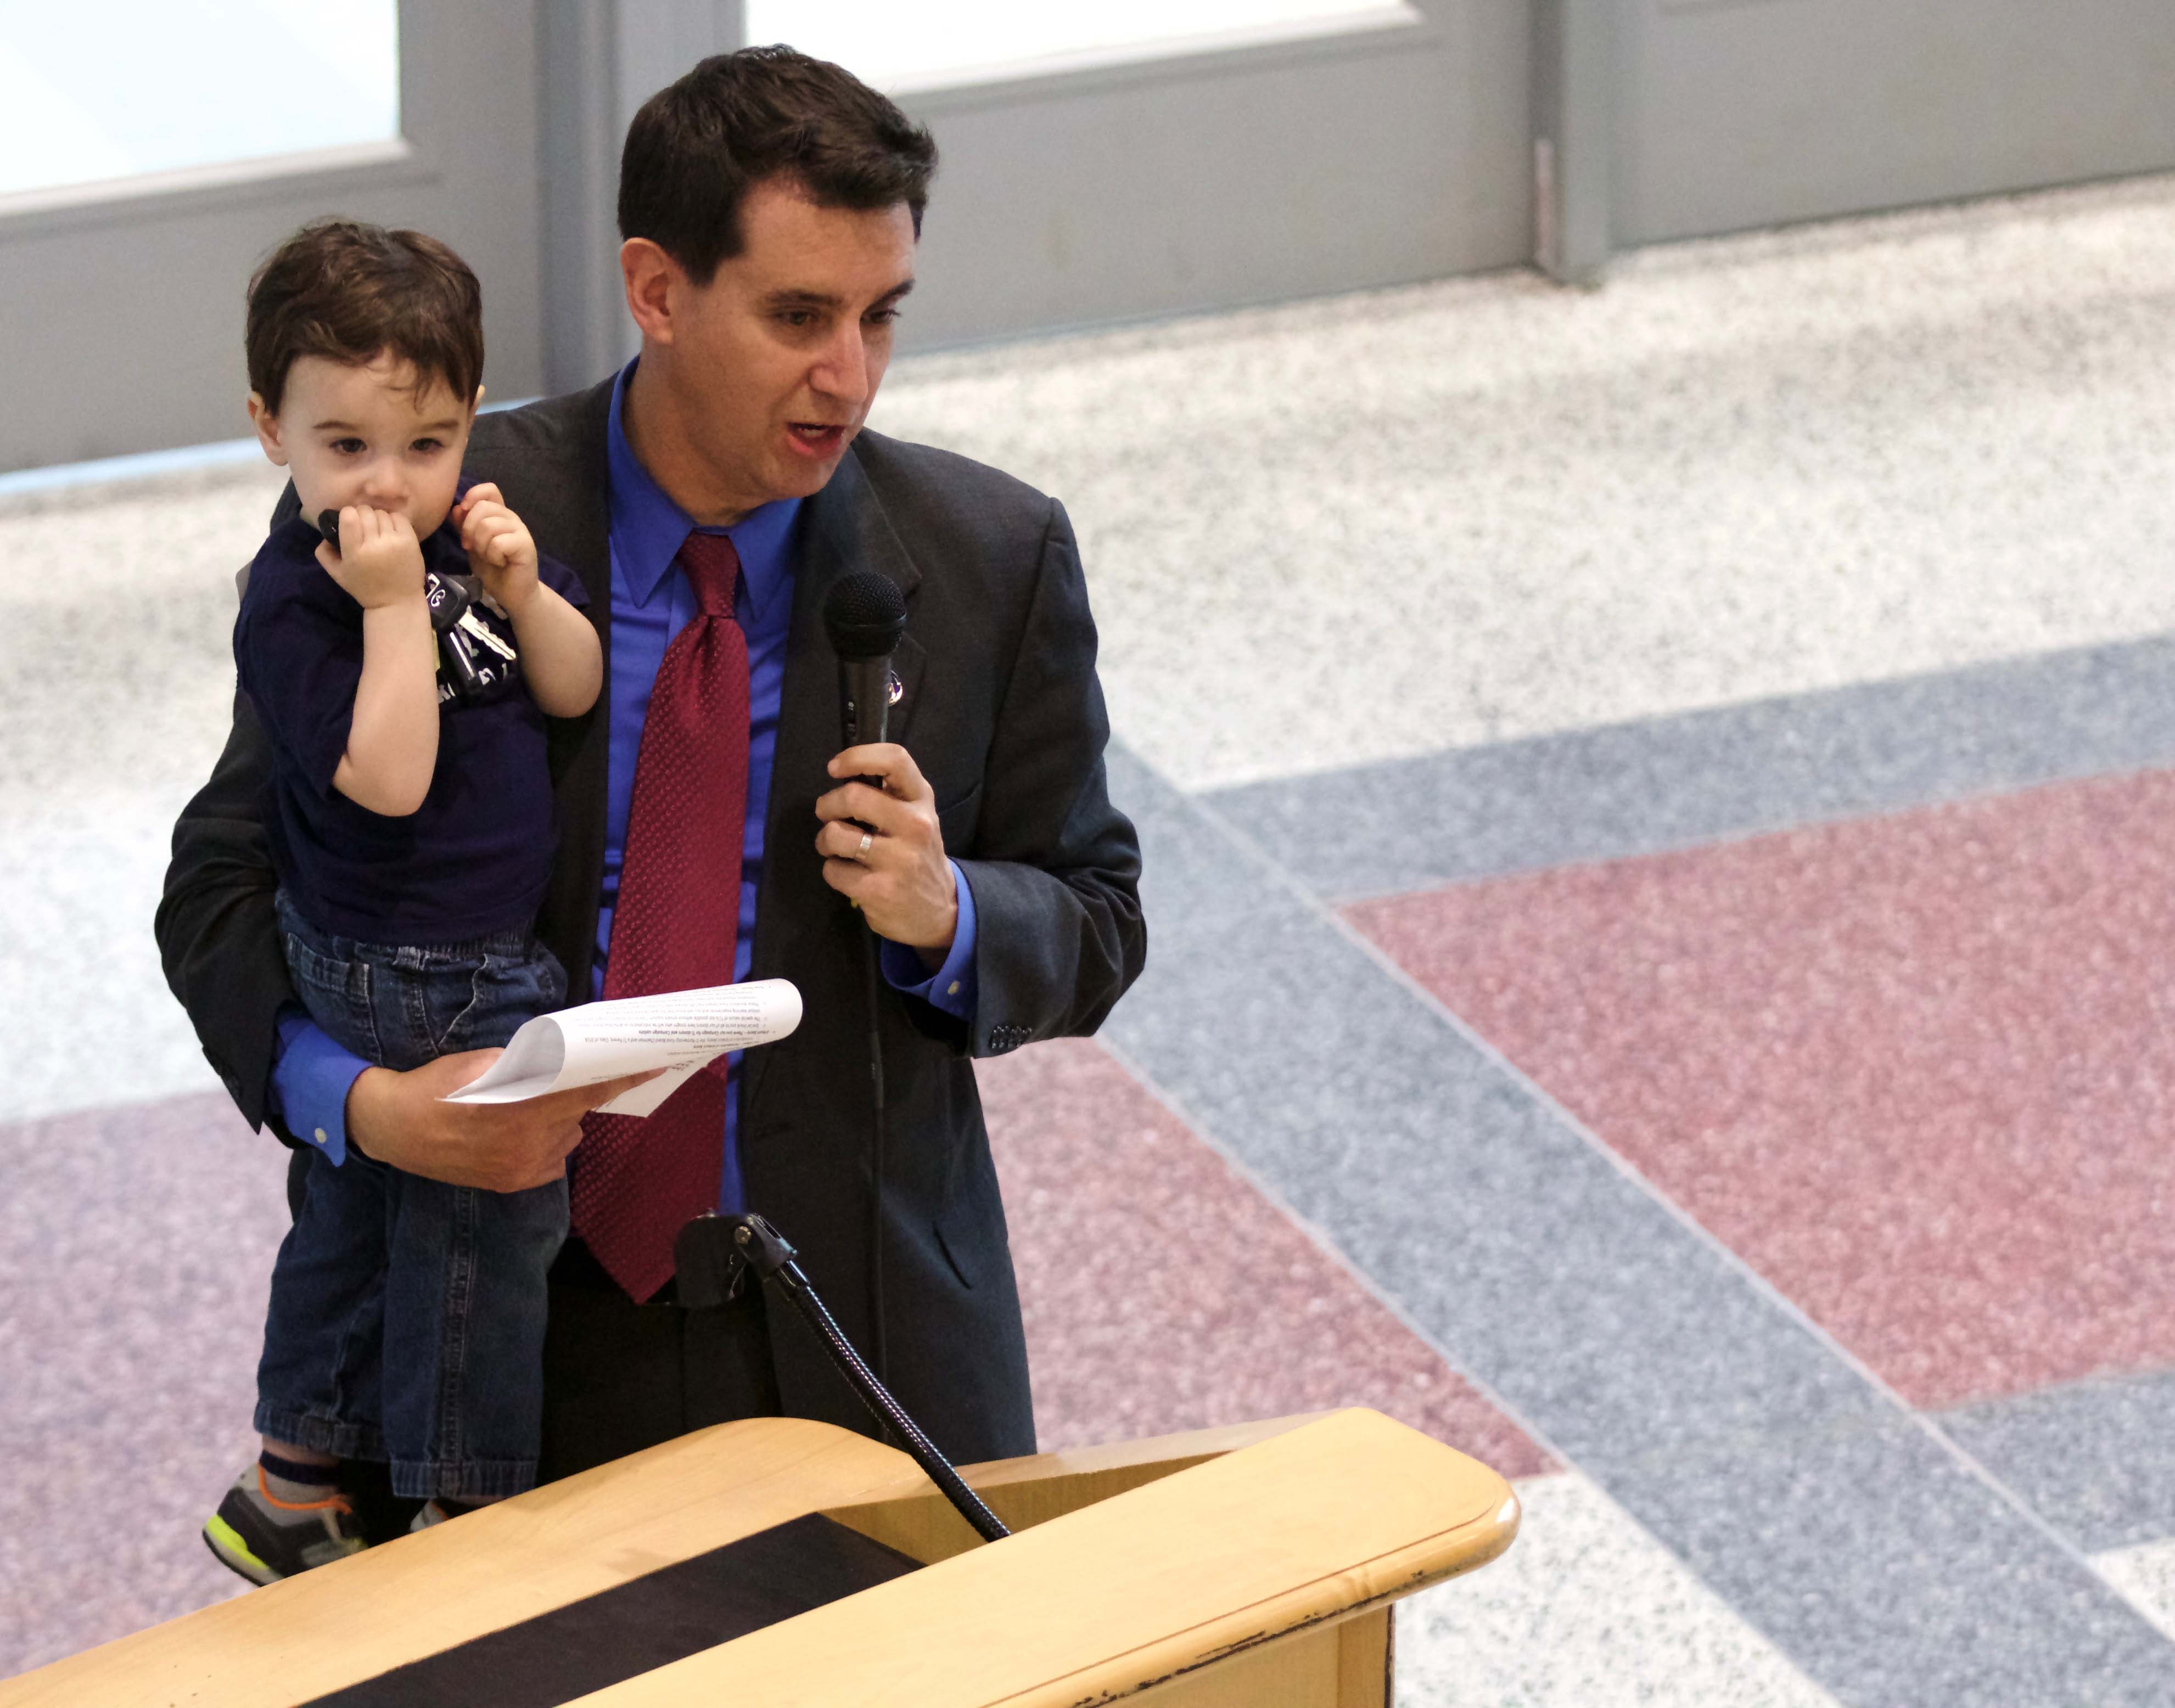 Holding his son Luke, Dr. Evan Glazer gives opening remarks at the dome opening ceremony on March 10. Glazer has served as principal of TJHSST for the last ten years.